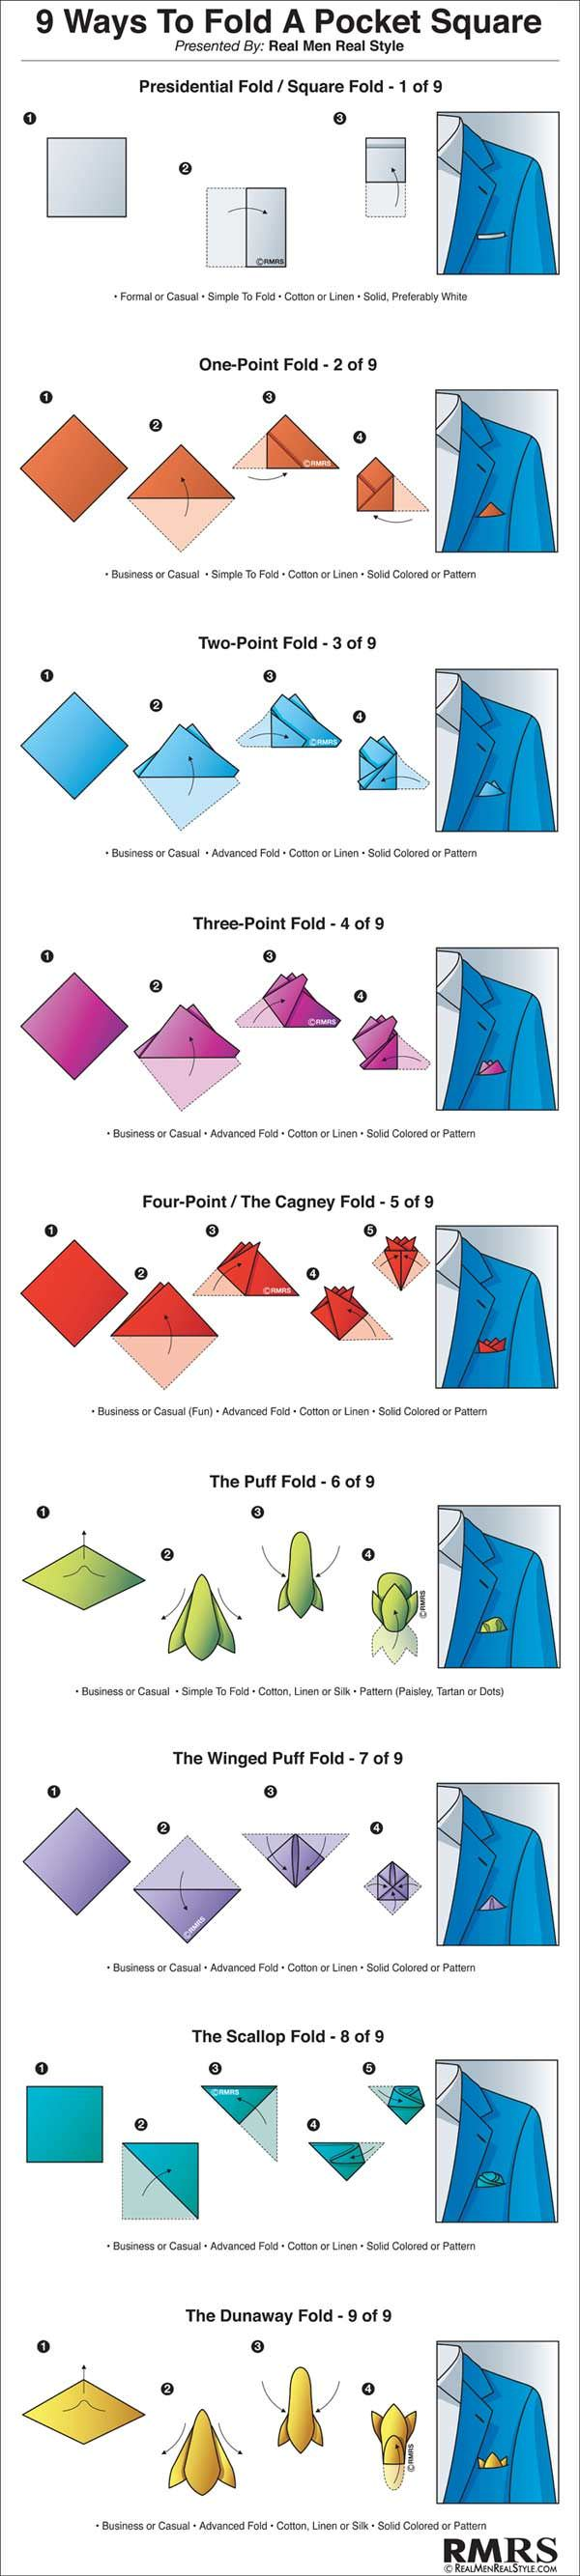 pocket-sqare, complete guide on how to fold a pocket square